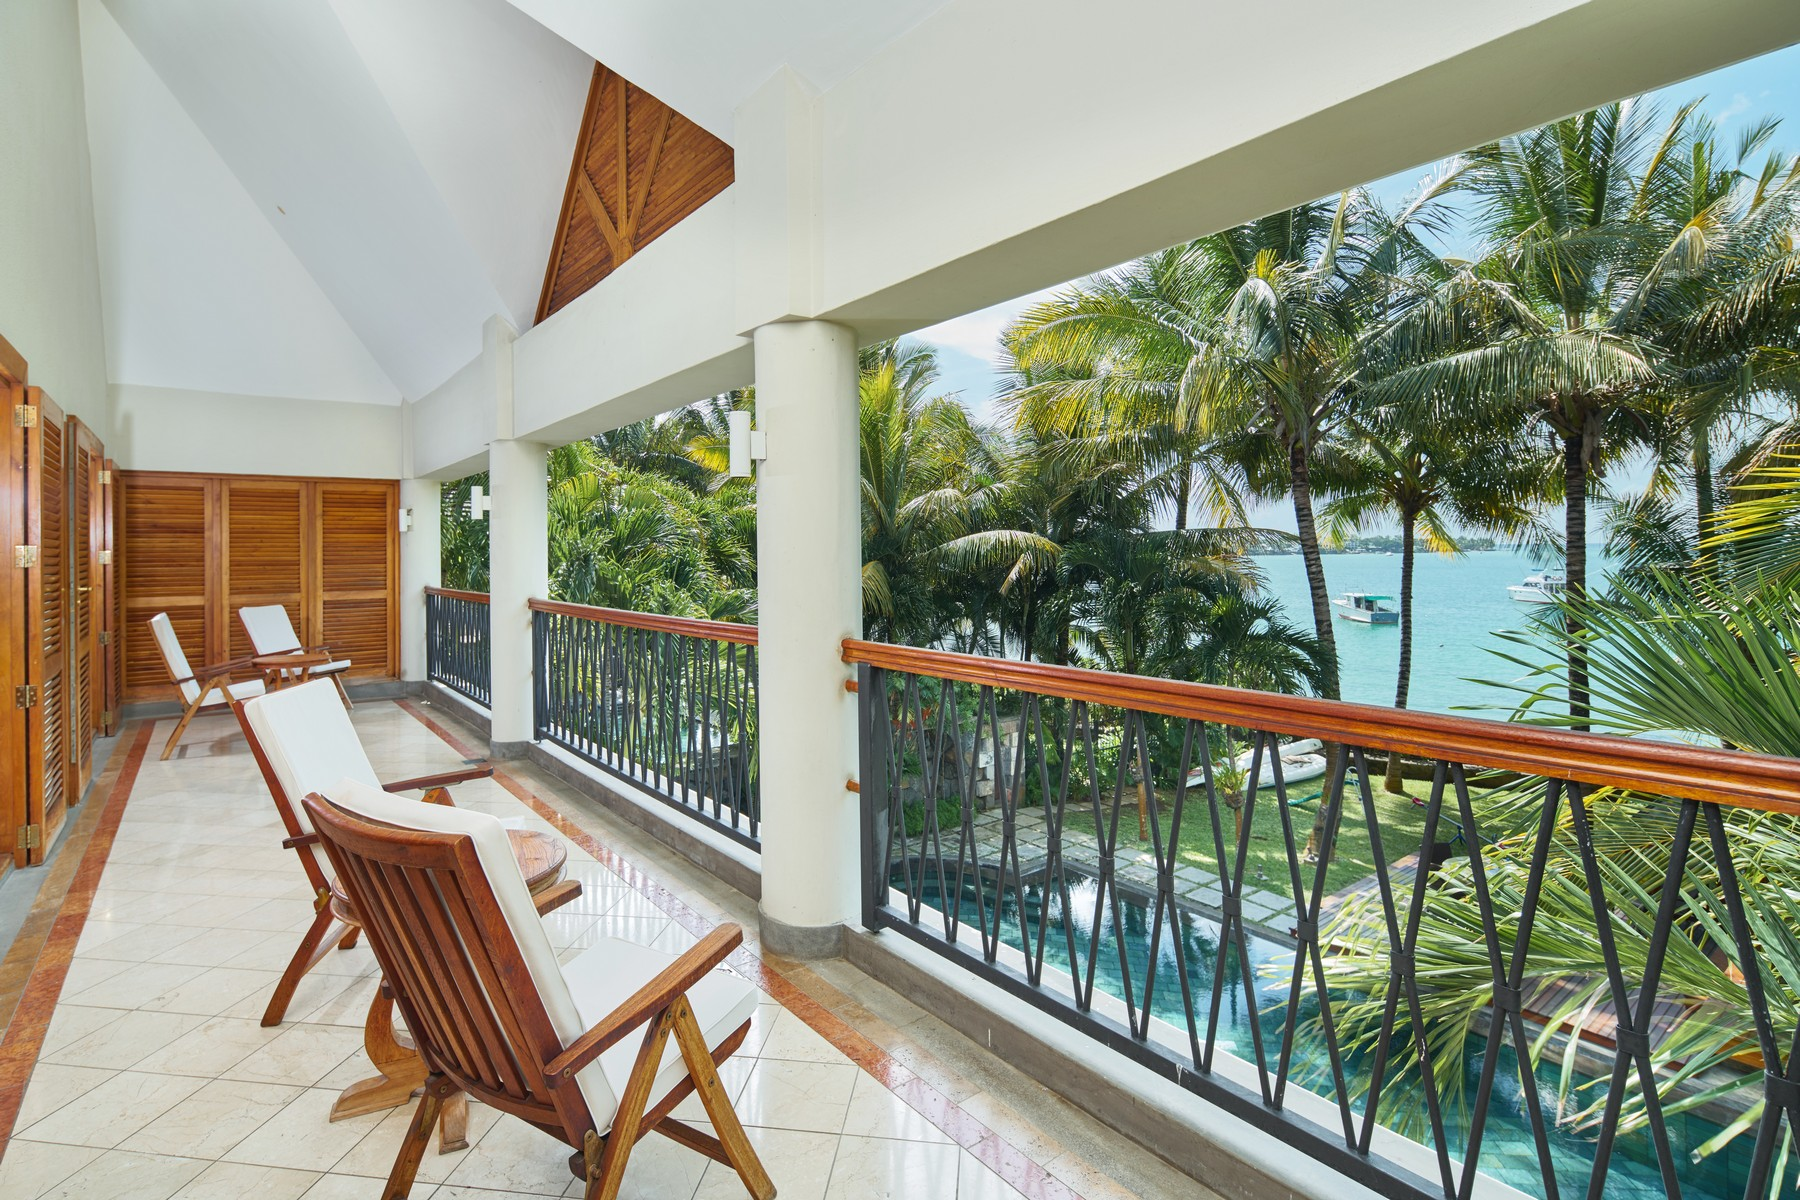 Additional photo for property listing at Luxury Family Waterfront Villa in Grand Baie Grand Baie, Riviere Du Rempart Maurice